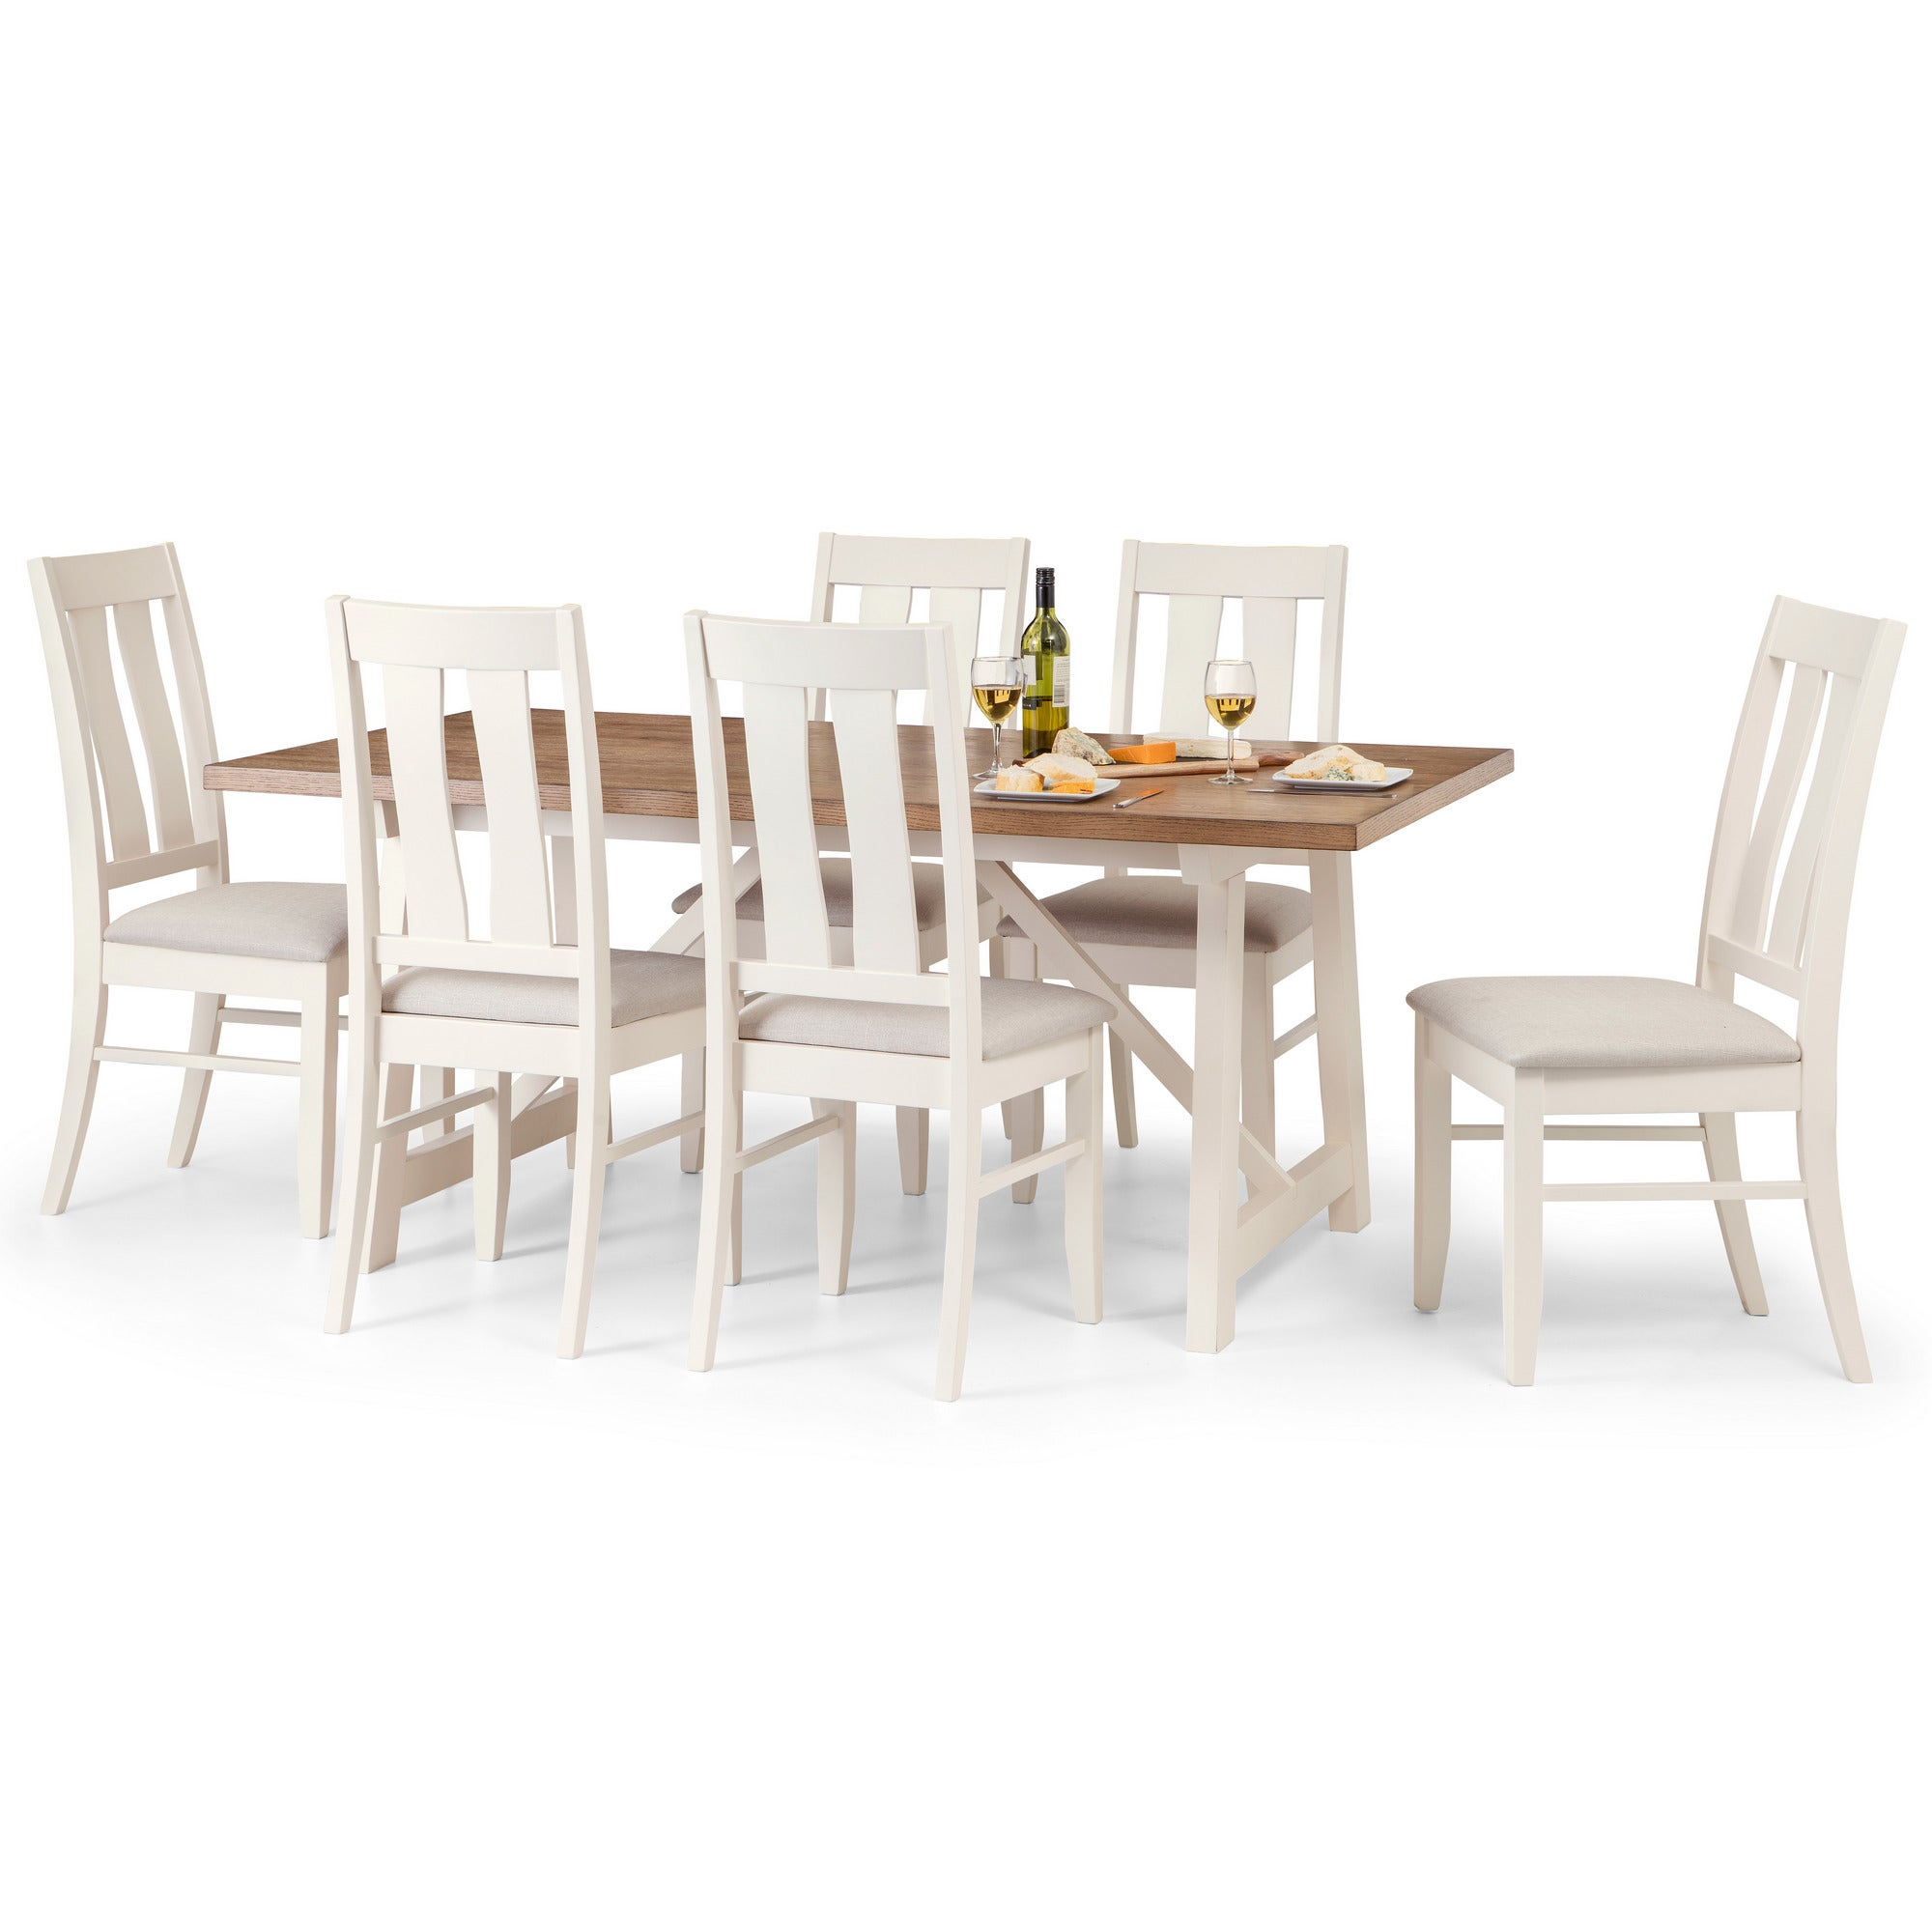 Pembroke Dining Table with 6 Chairs Cream